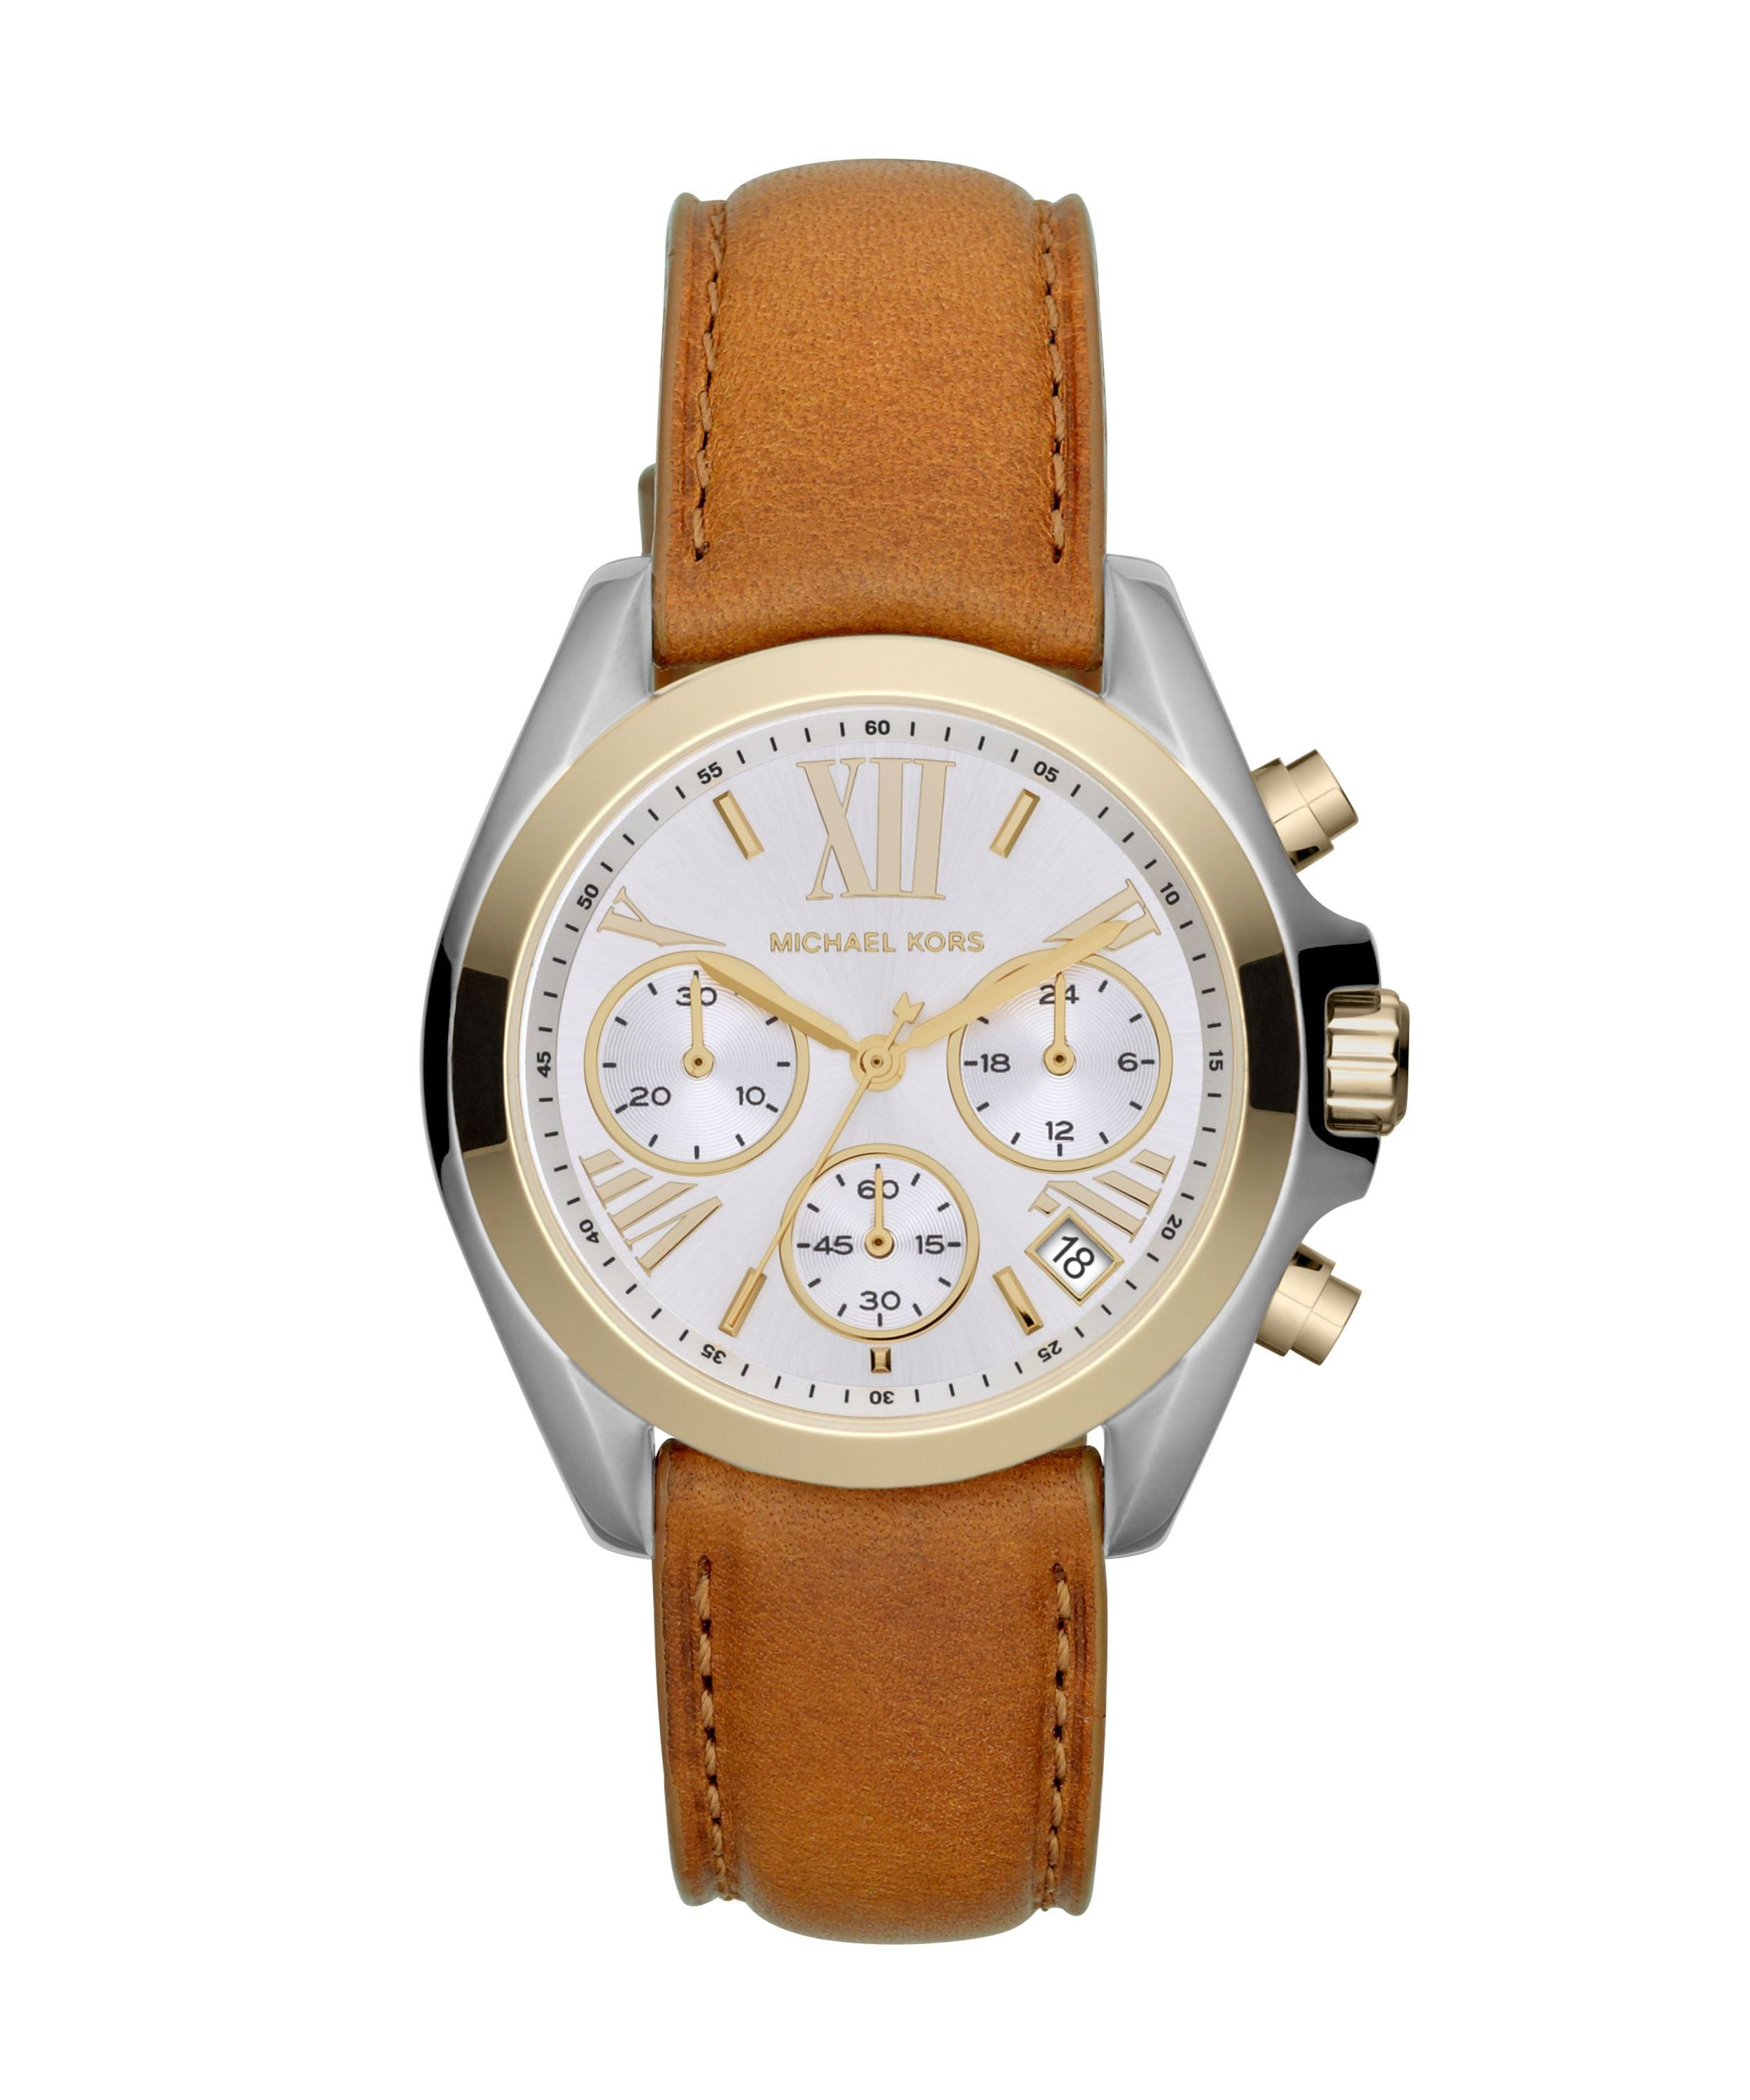 MK2301 Brown leather ladies watch